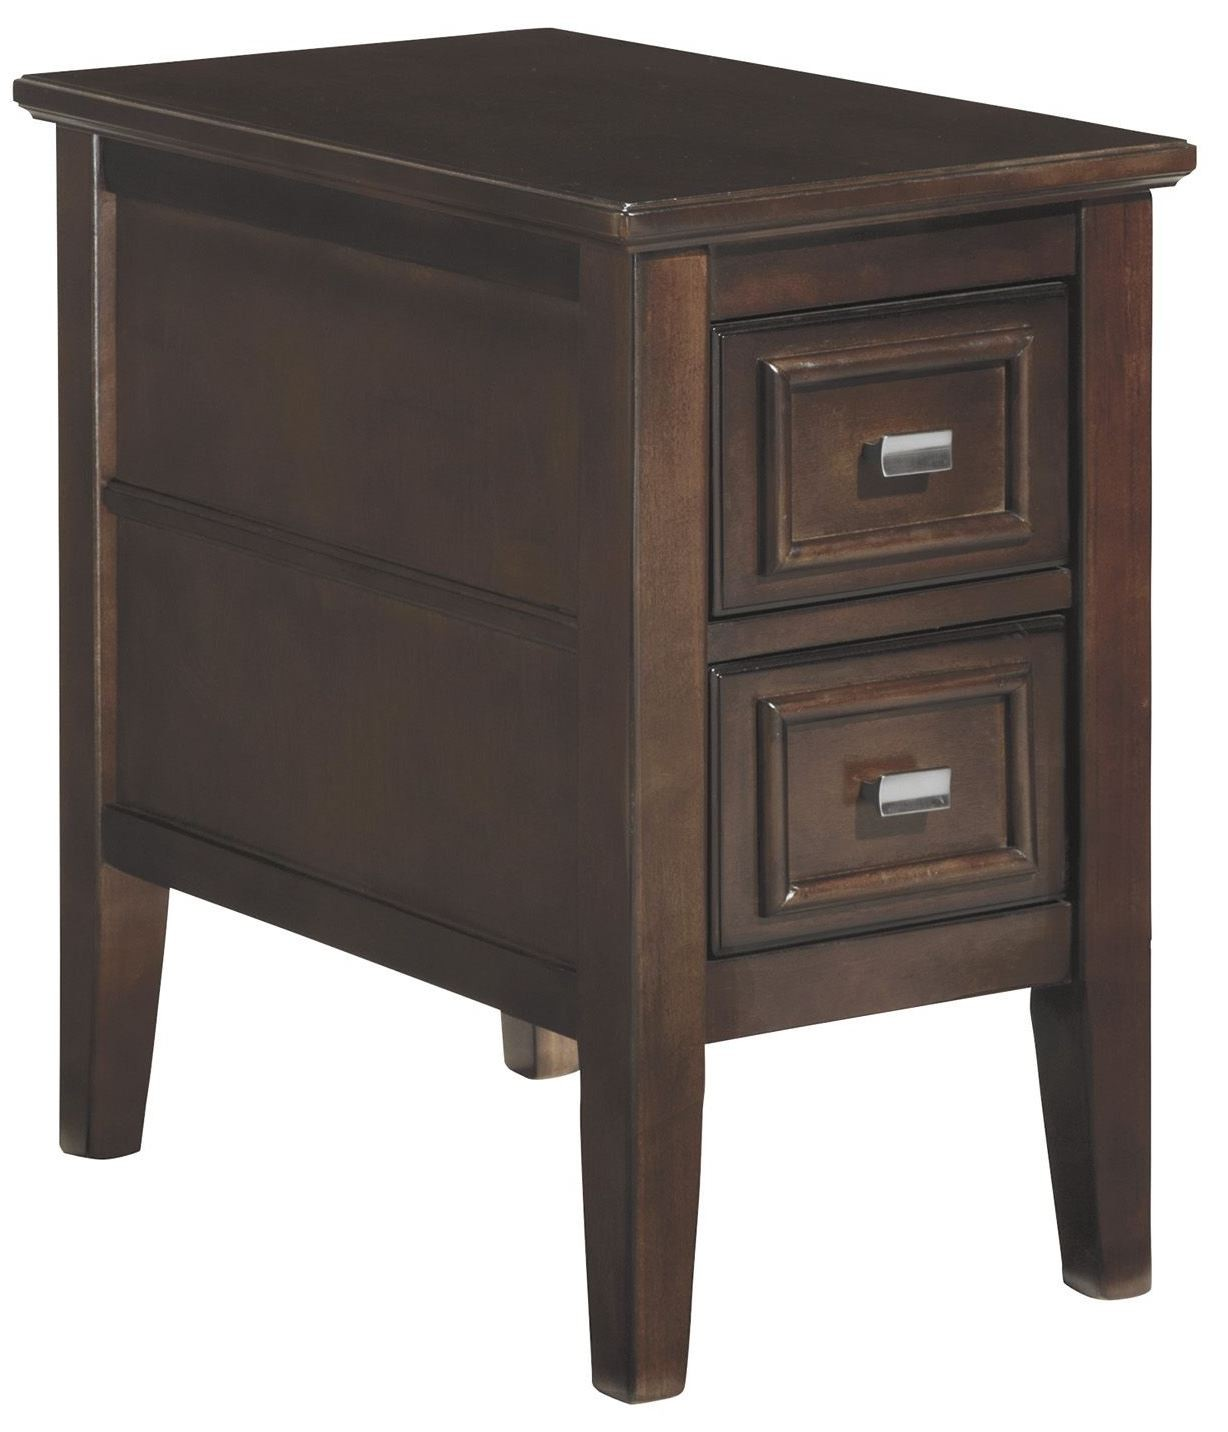 Larimer chairside end table from ashley t654 7 coleman for Chairside table